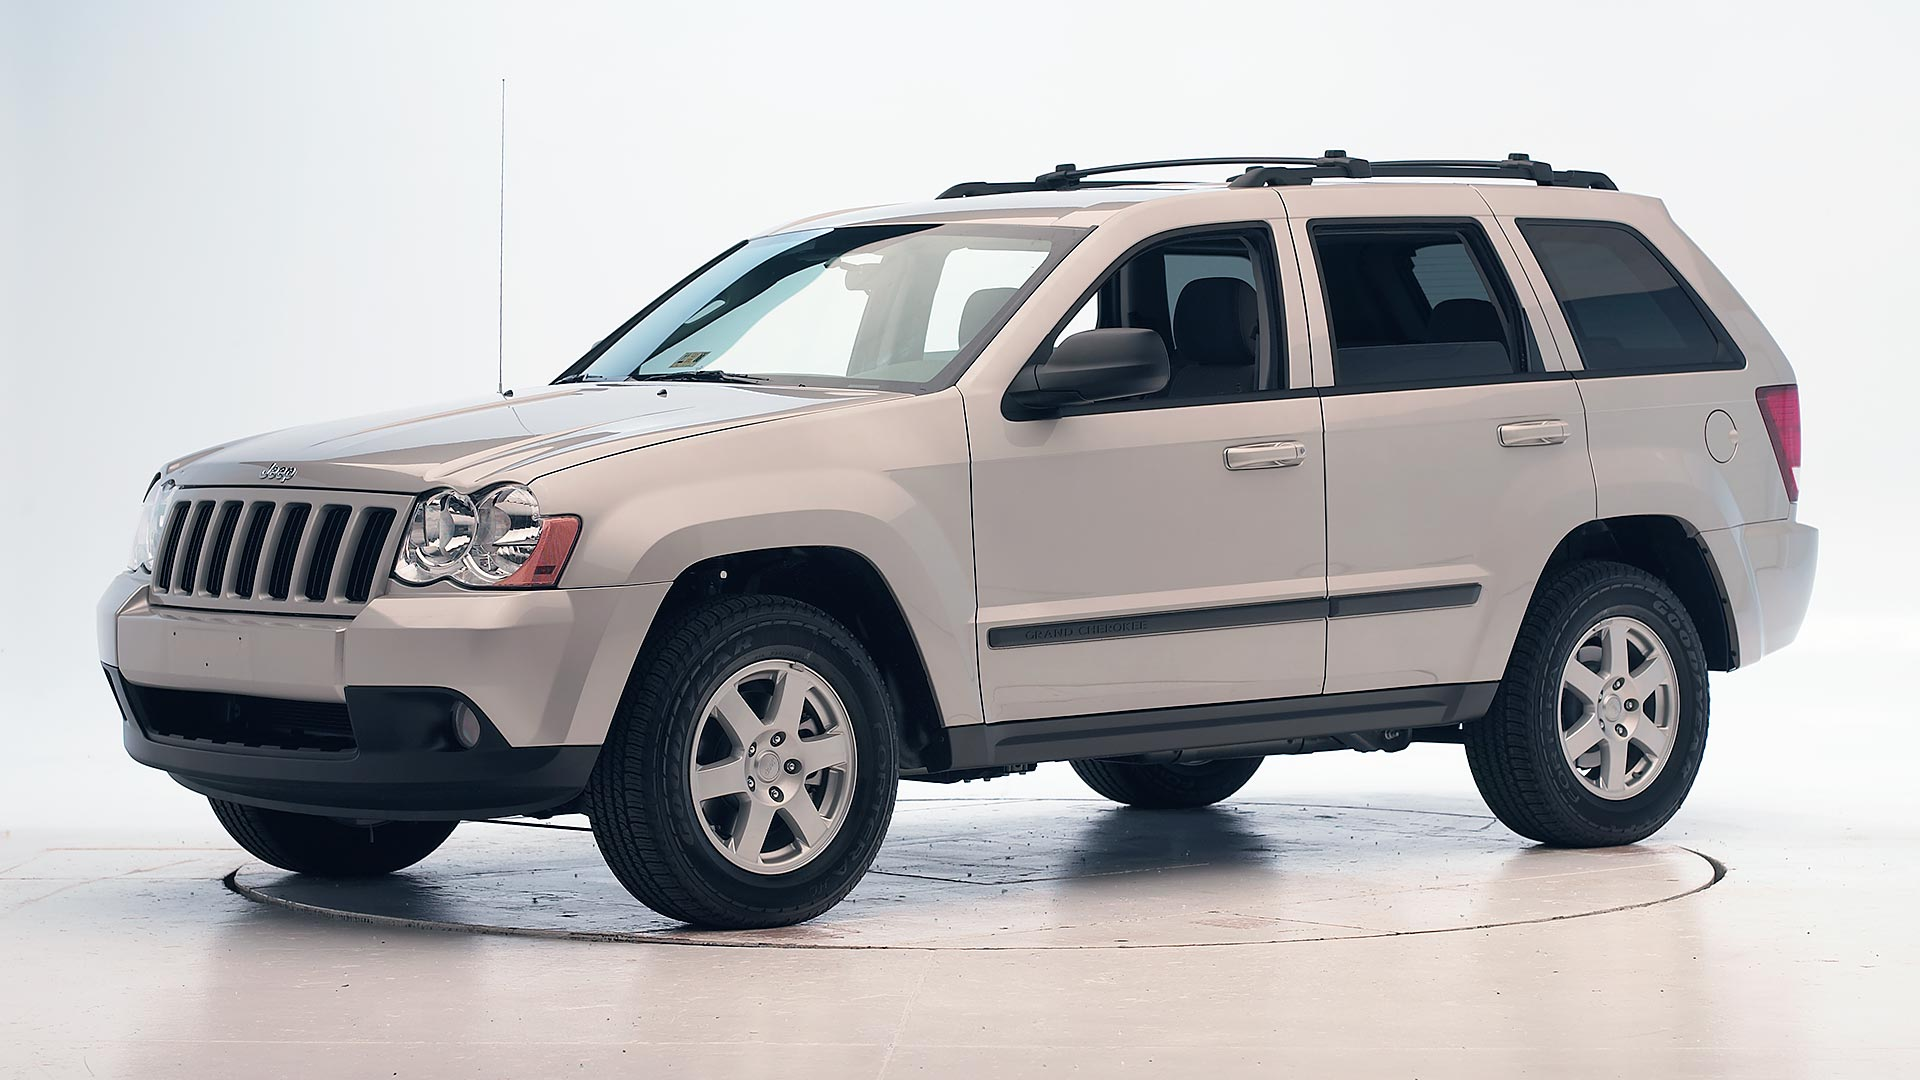 2009 Jeep Grand Cherokee 4-door SUV